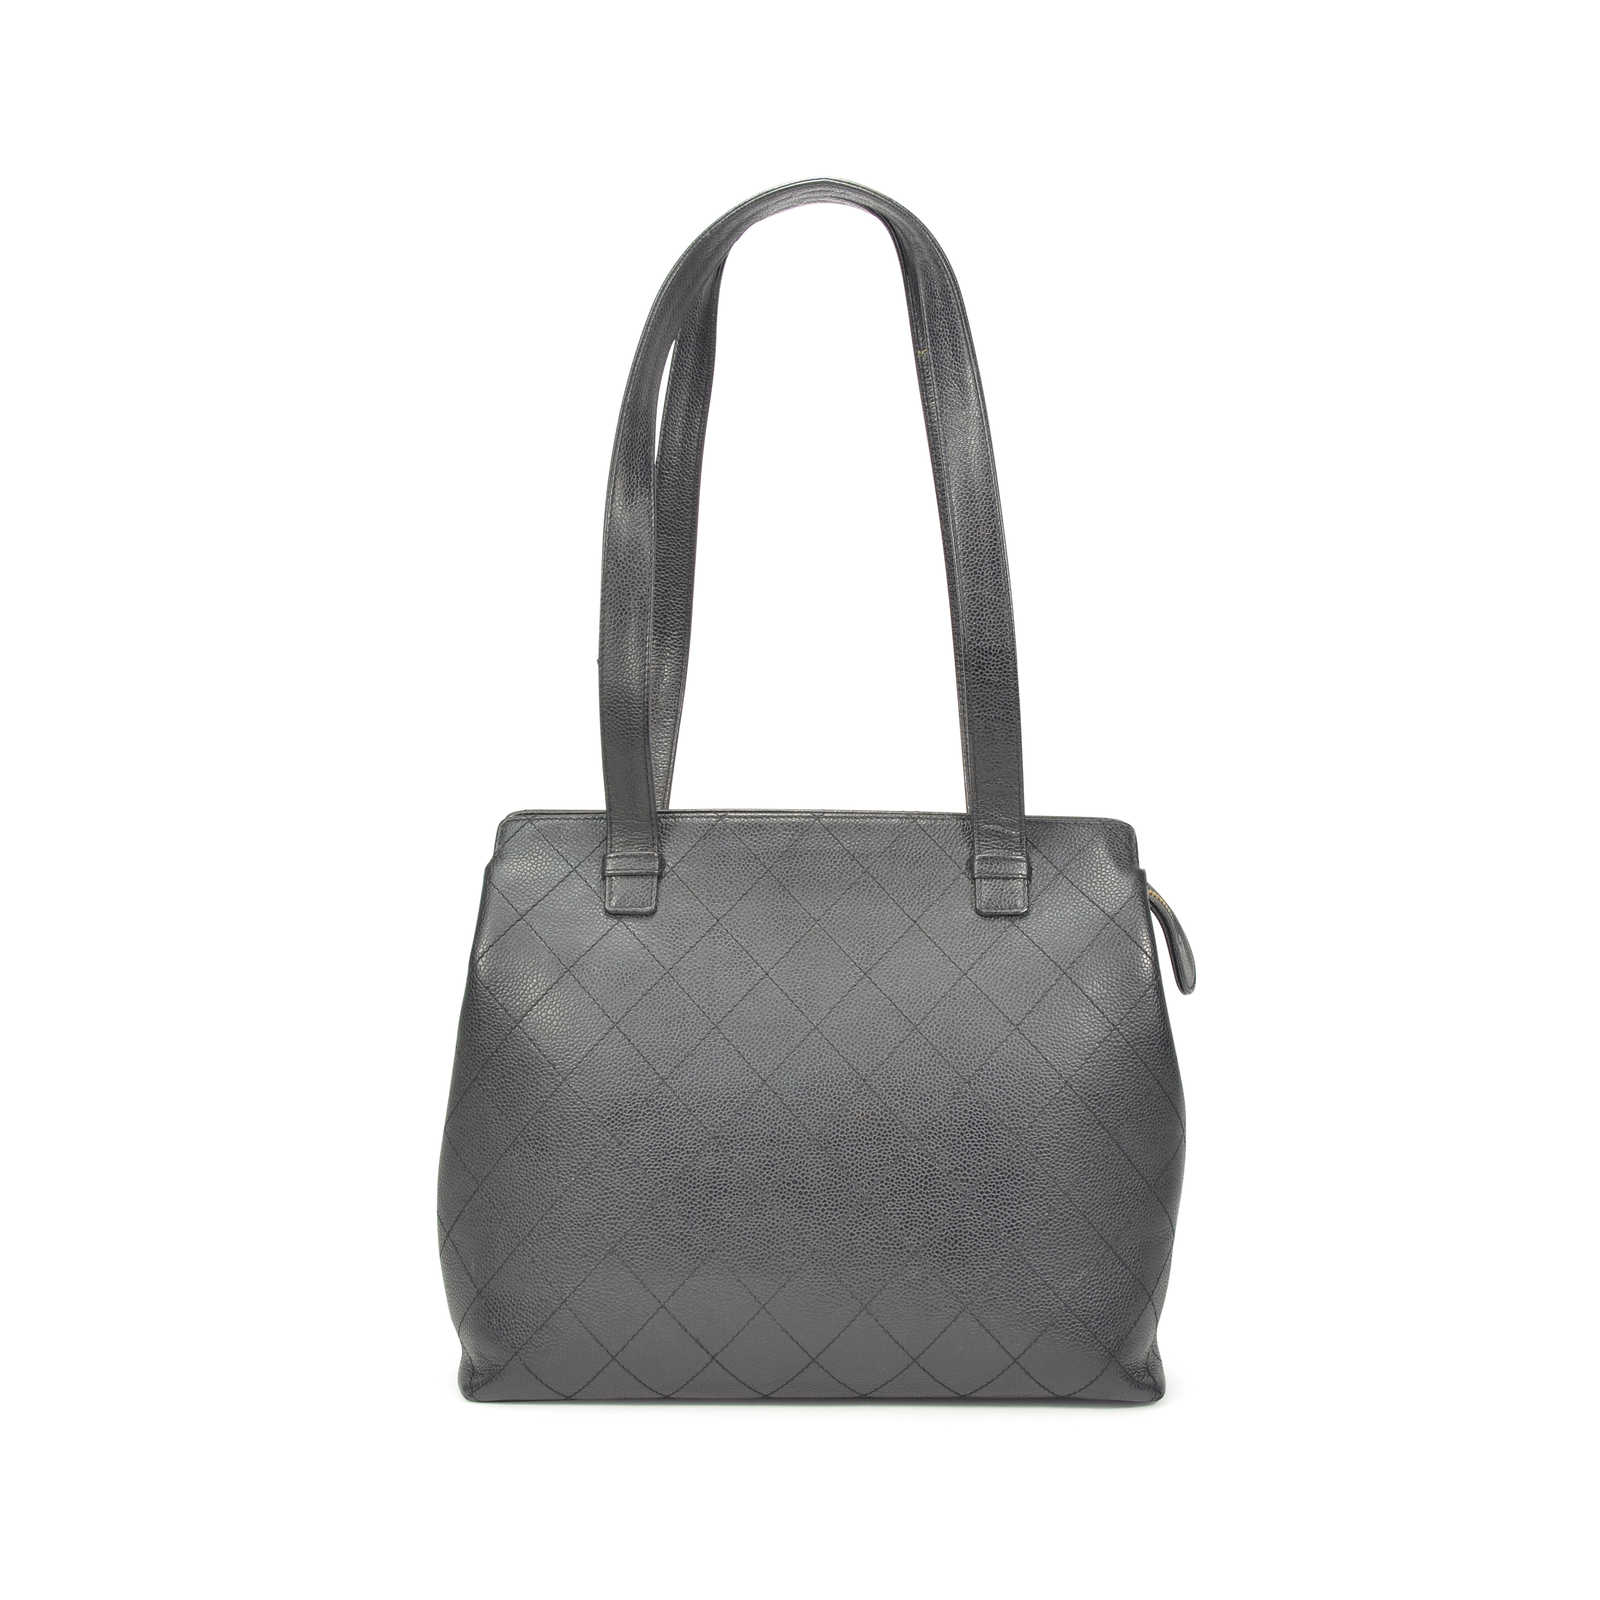 ... Authentic Pre Owned Chanel Quilted Caviar Tote Bag (PSS-327-00005) ... 62ddd12ce39eb